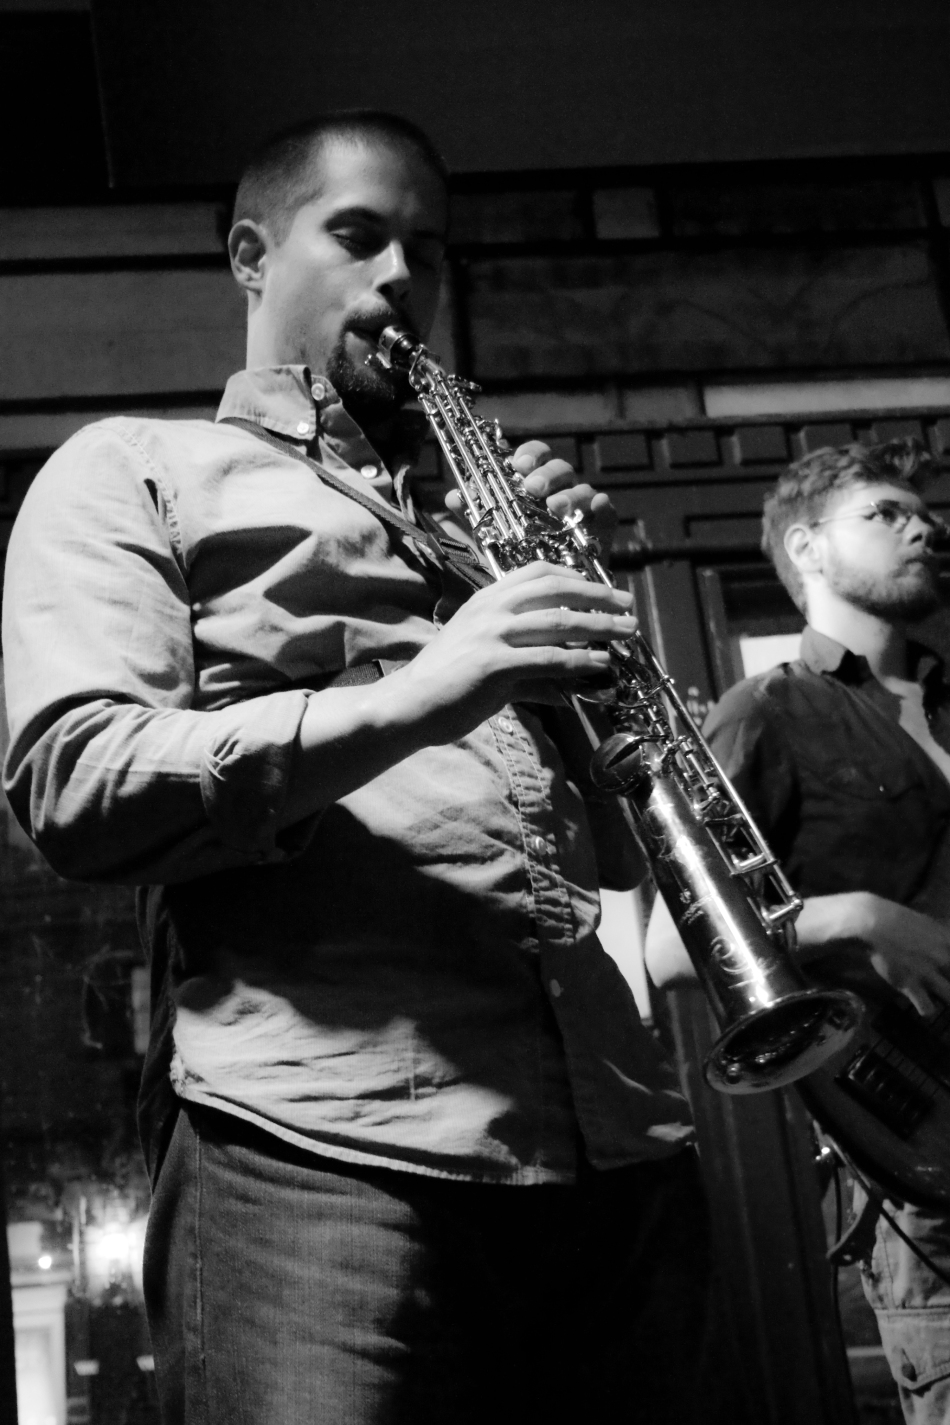 Saxophonist Bryce playing a soprano saxophone with New Orleans Jazz Trio Chicken & Waffles